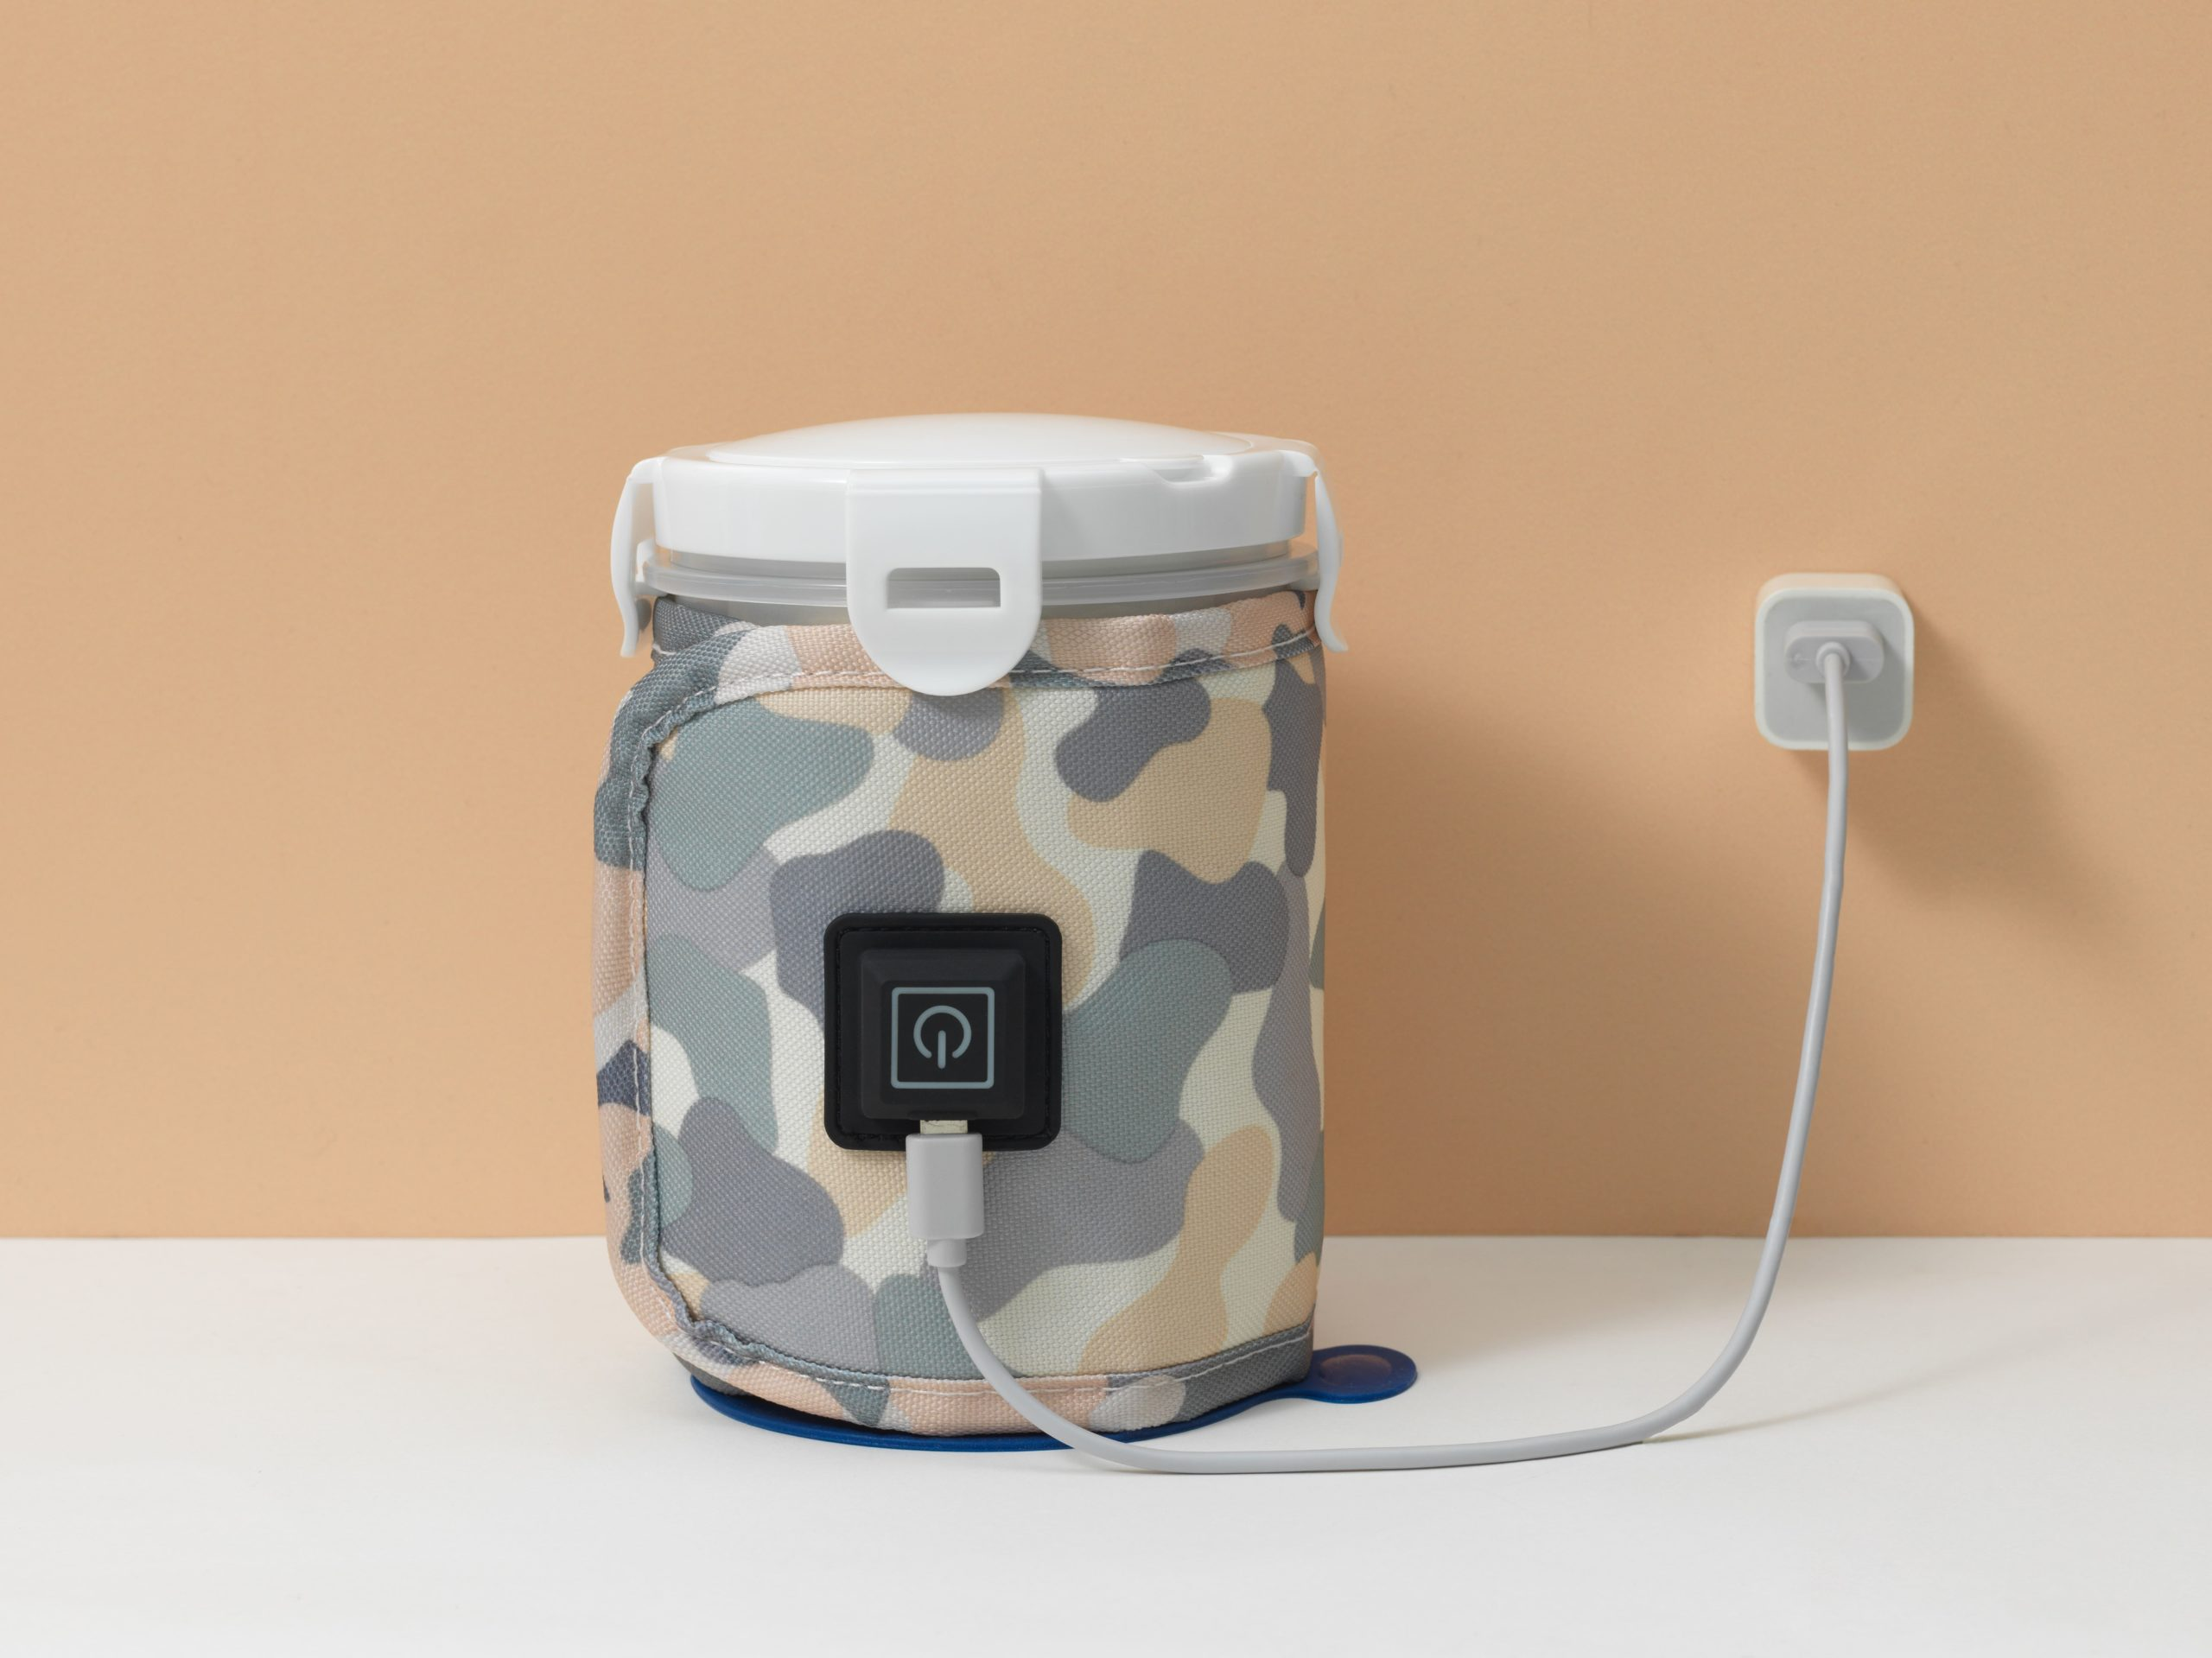 Eonian Care Portable Electric Wipe Warmer USB Rechargeable